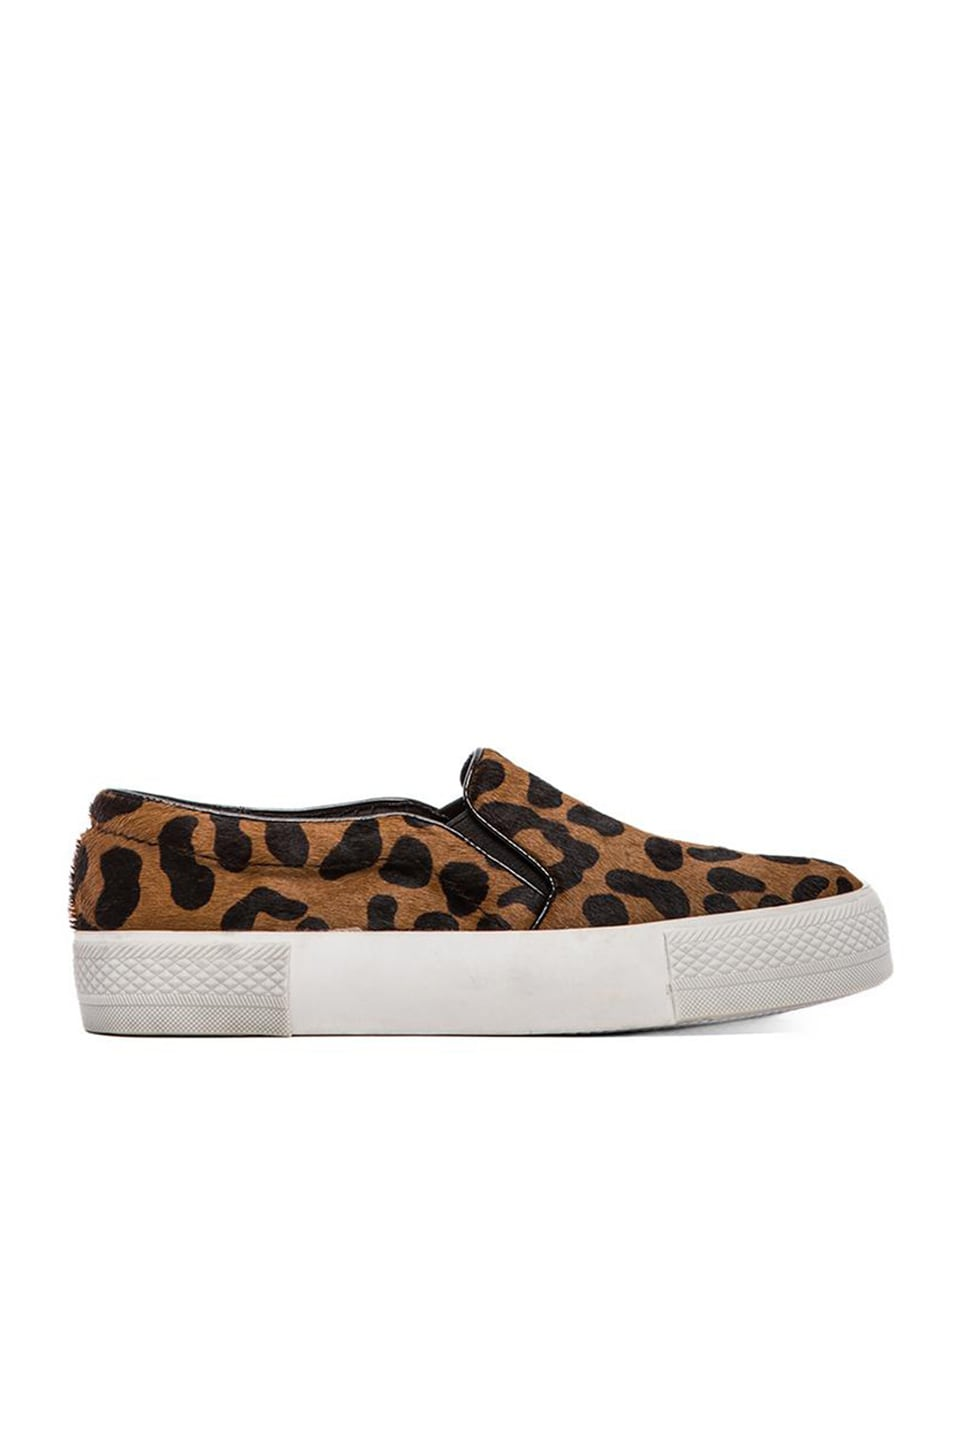 Steve Madden NYC Flat with pony hair in Leopard Pony